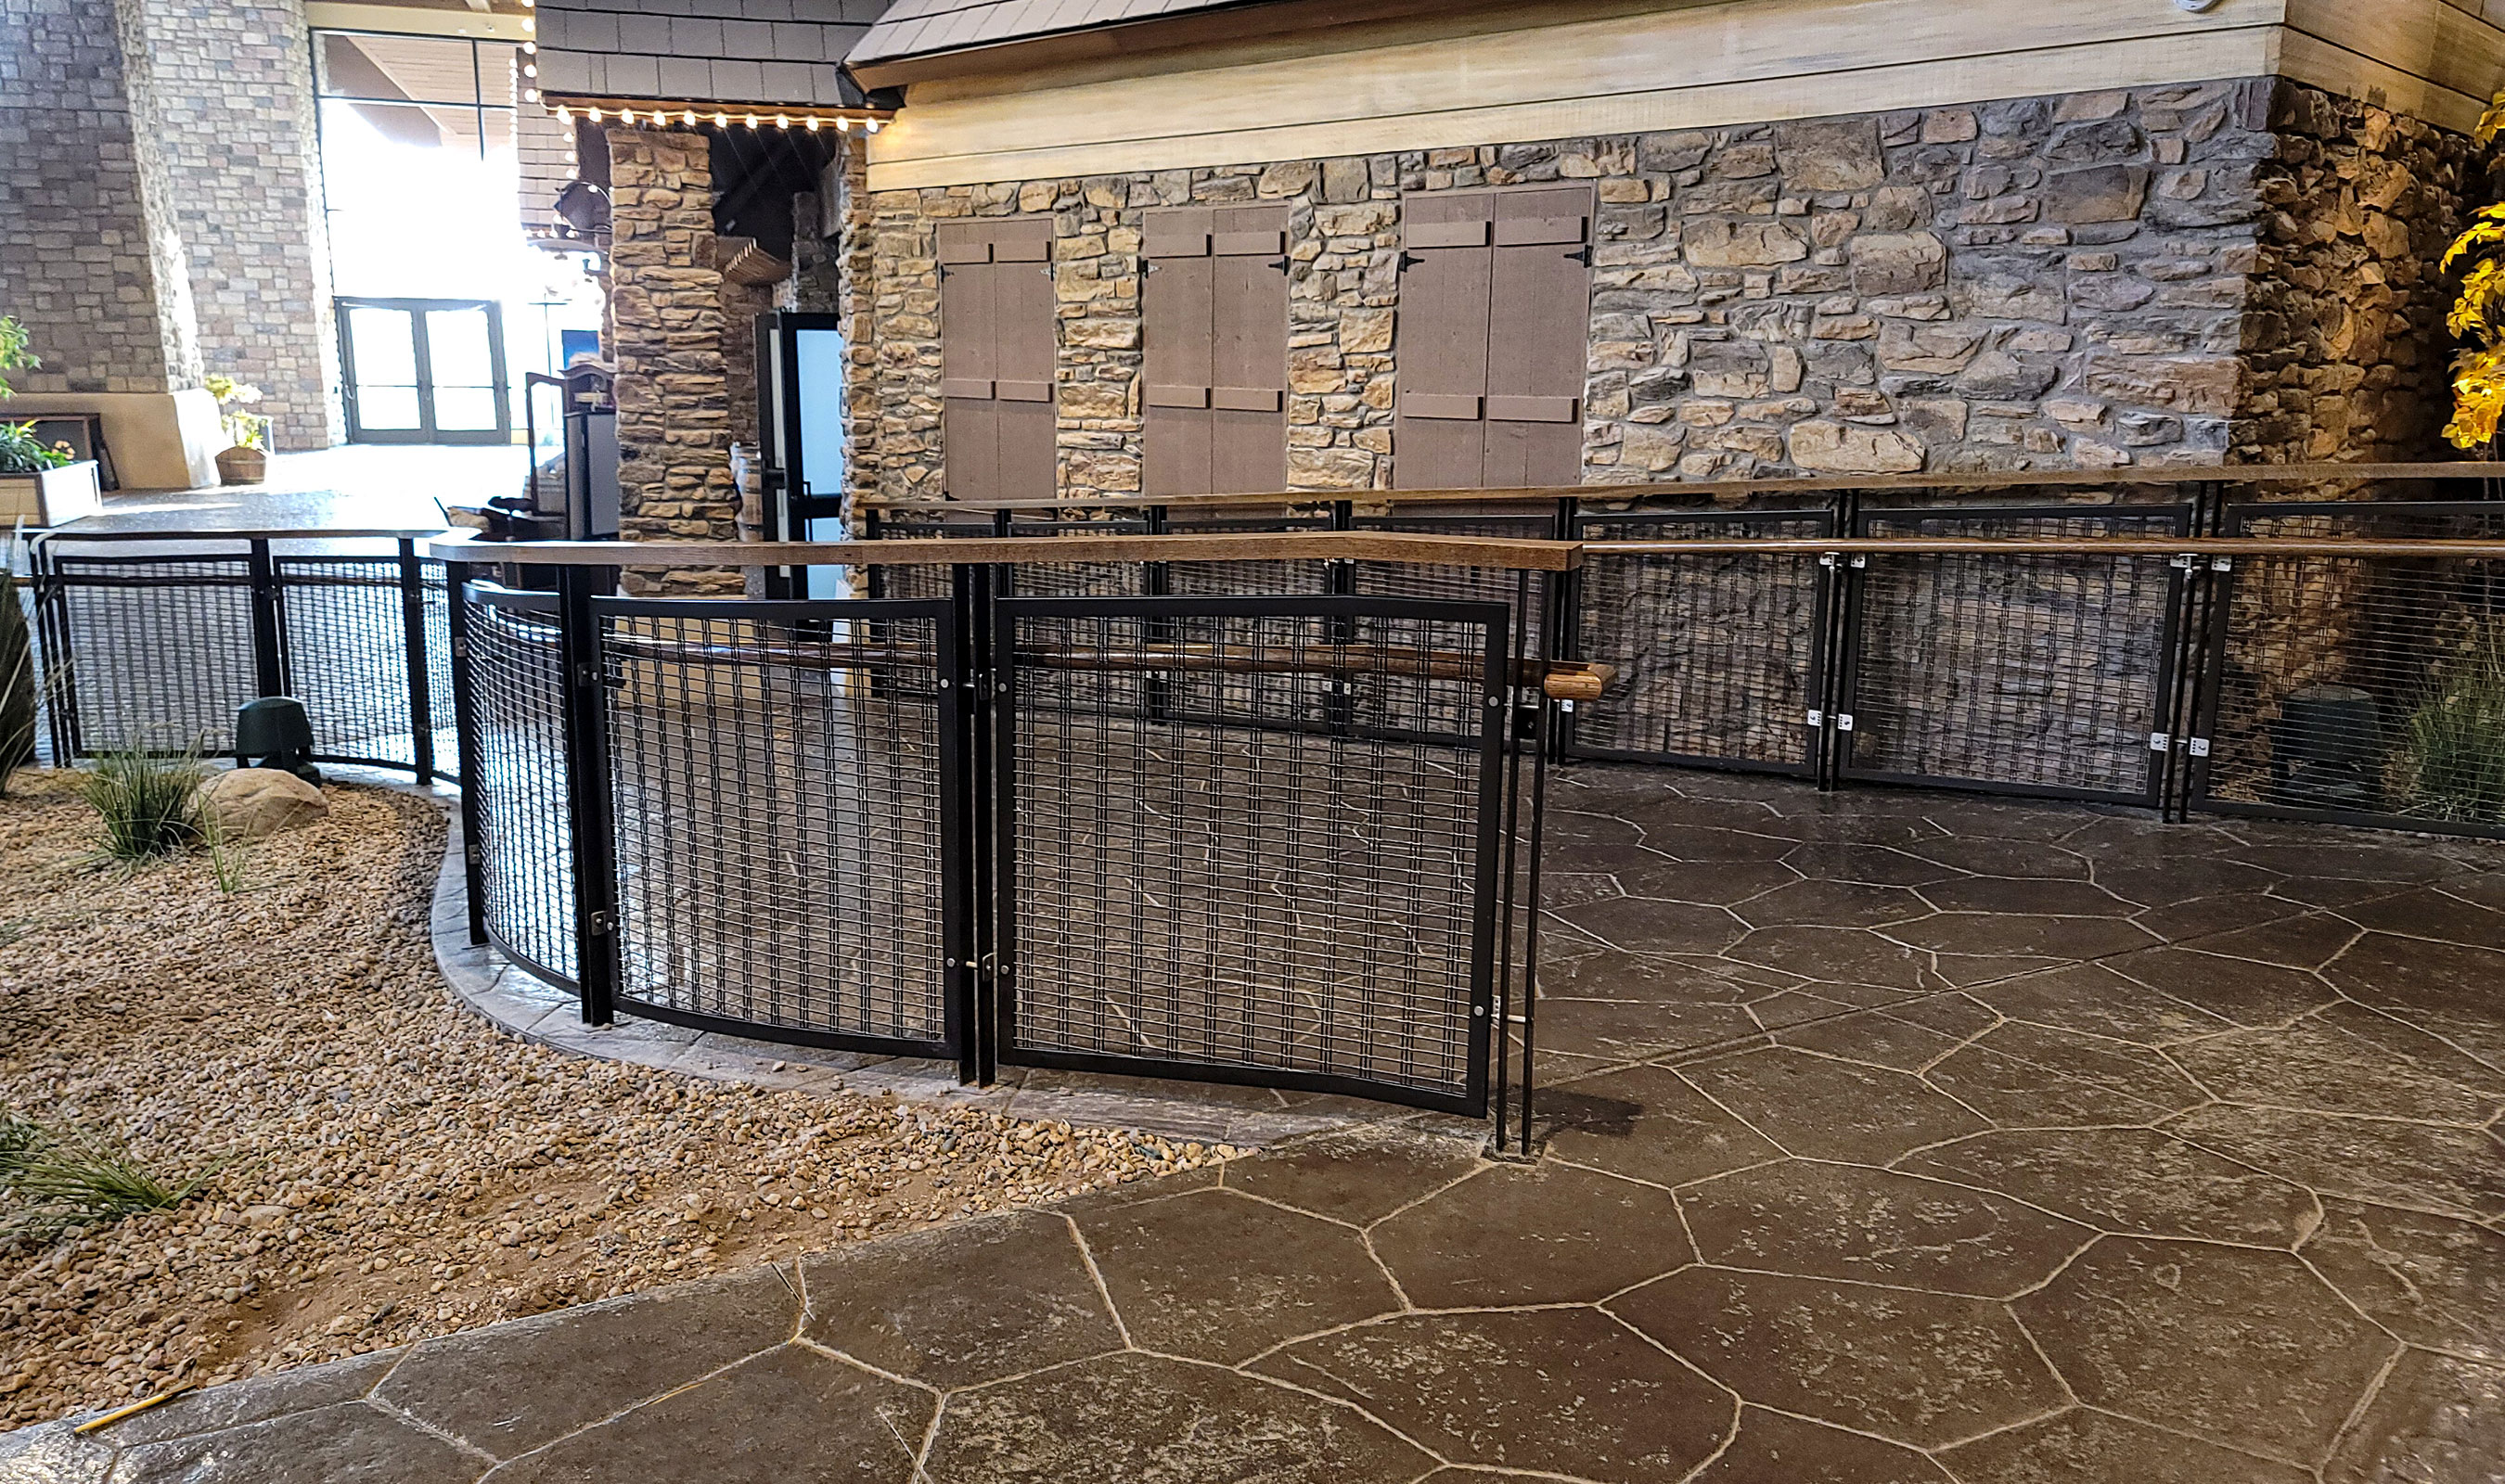 The wire mesh railing infills are curved along with the frame to follow the winding paths.